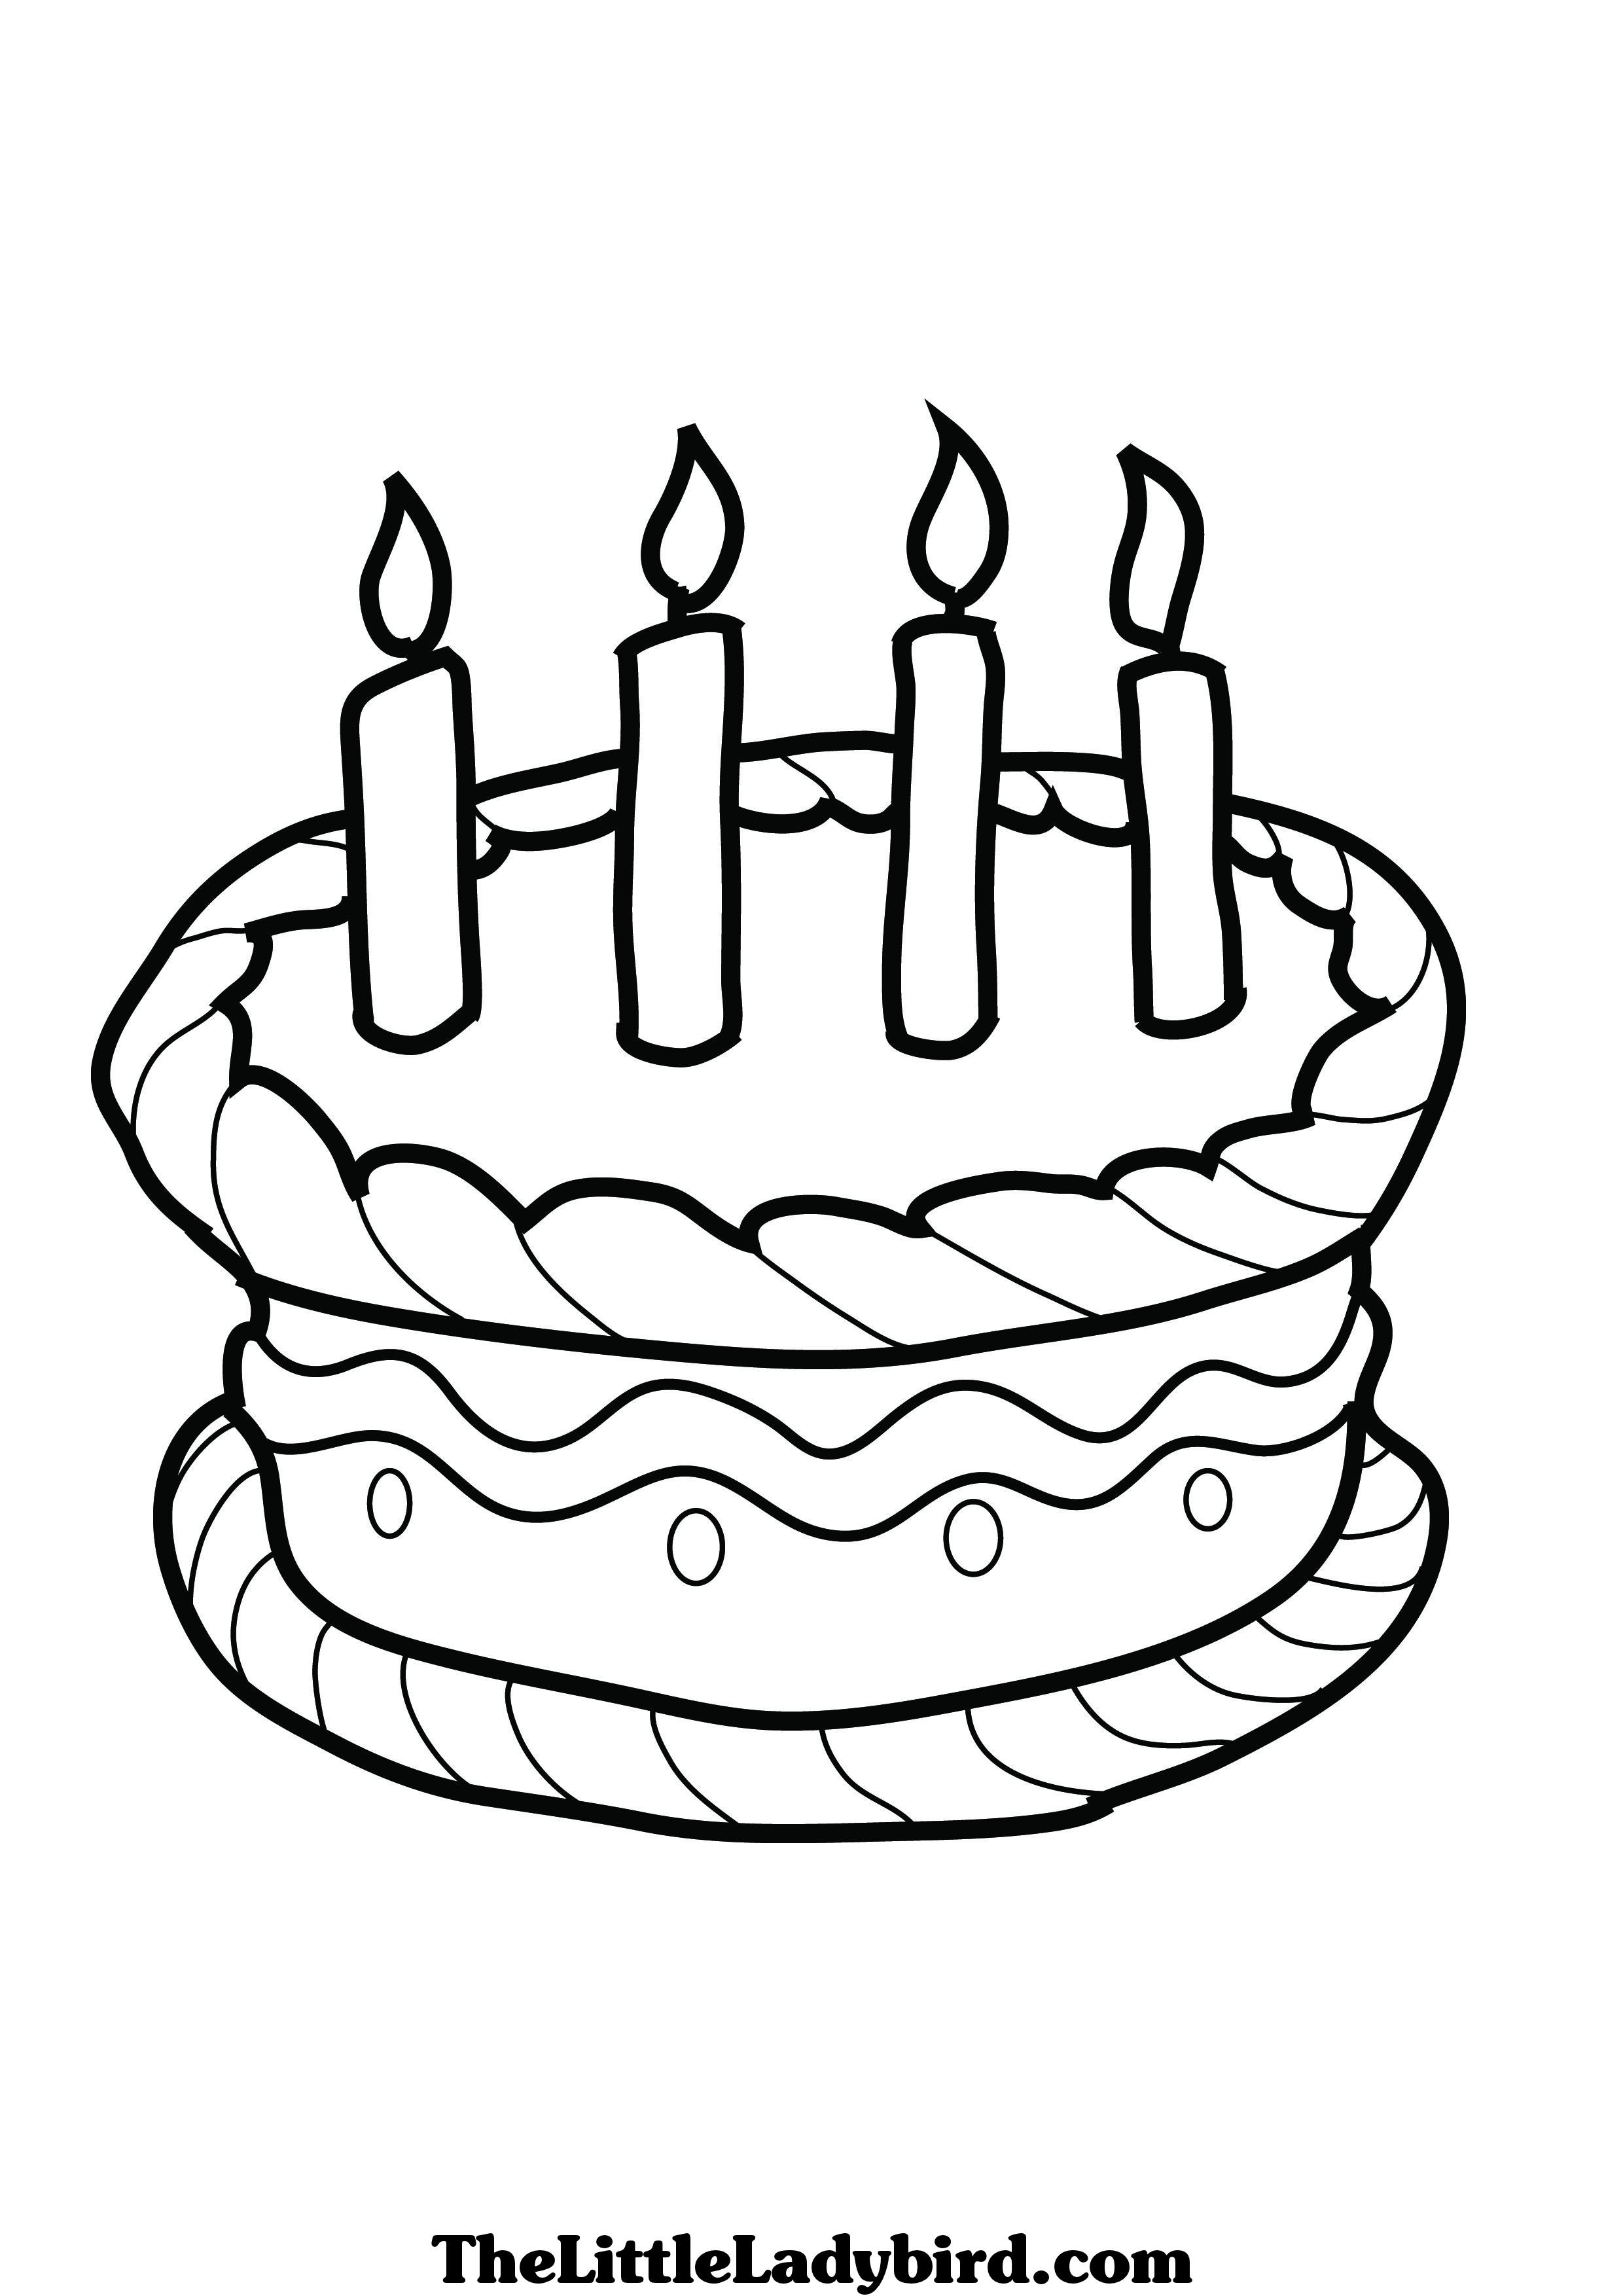 Drawing Cake Colour Birthday Cake Coloring Pages To Download And Print For Free